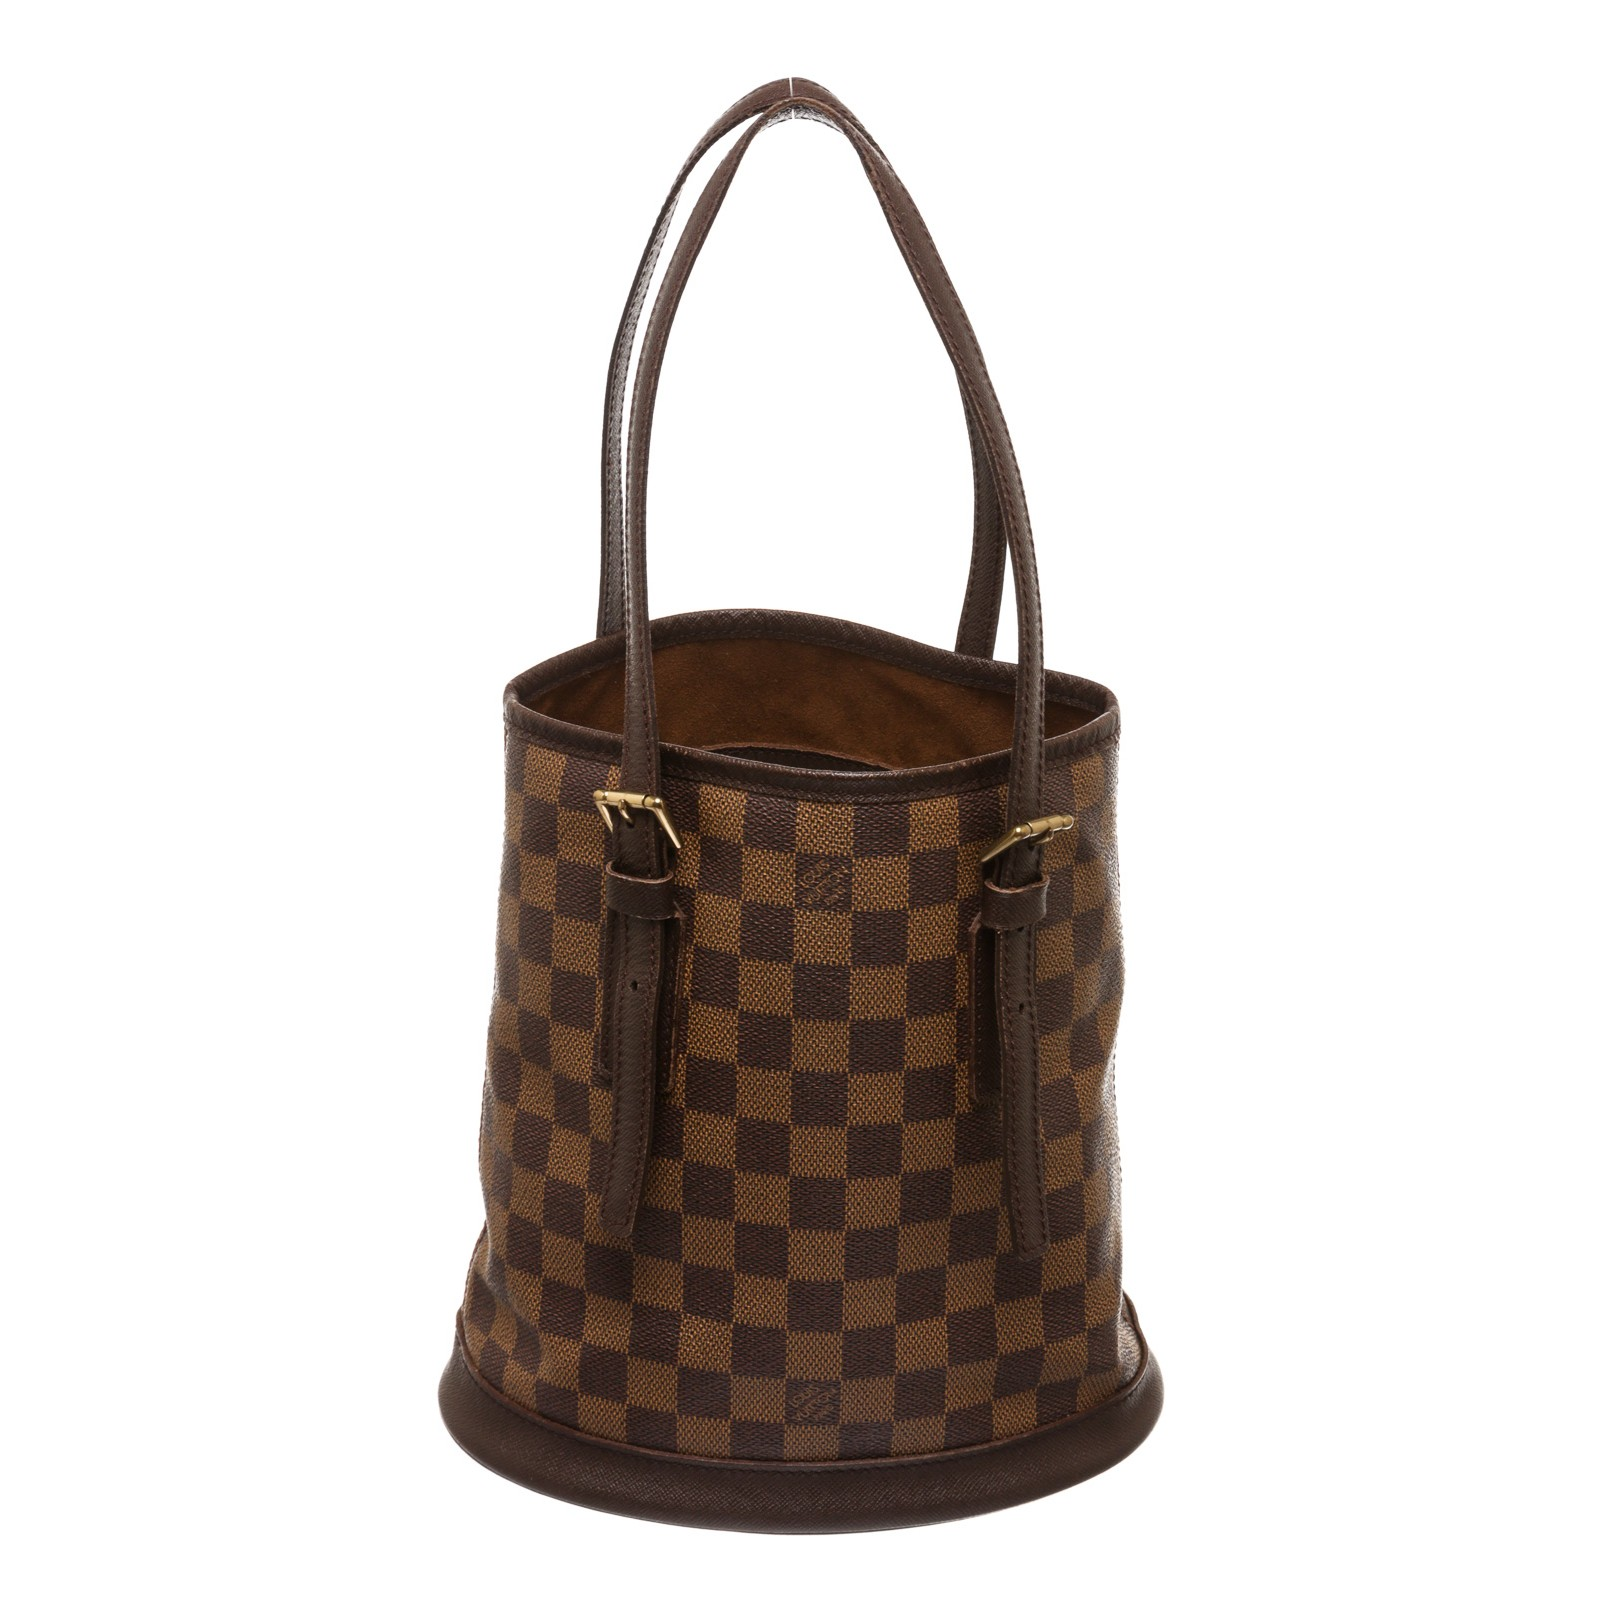 0840ec567fa9e Shop for Louis Vuitton Damier Ebene Canvas Leather Bucket Marais PM ...